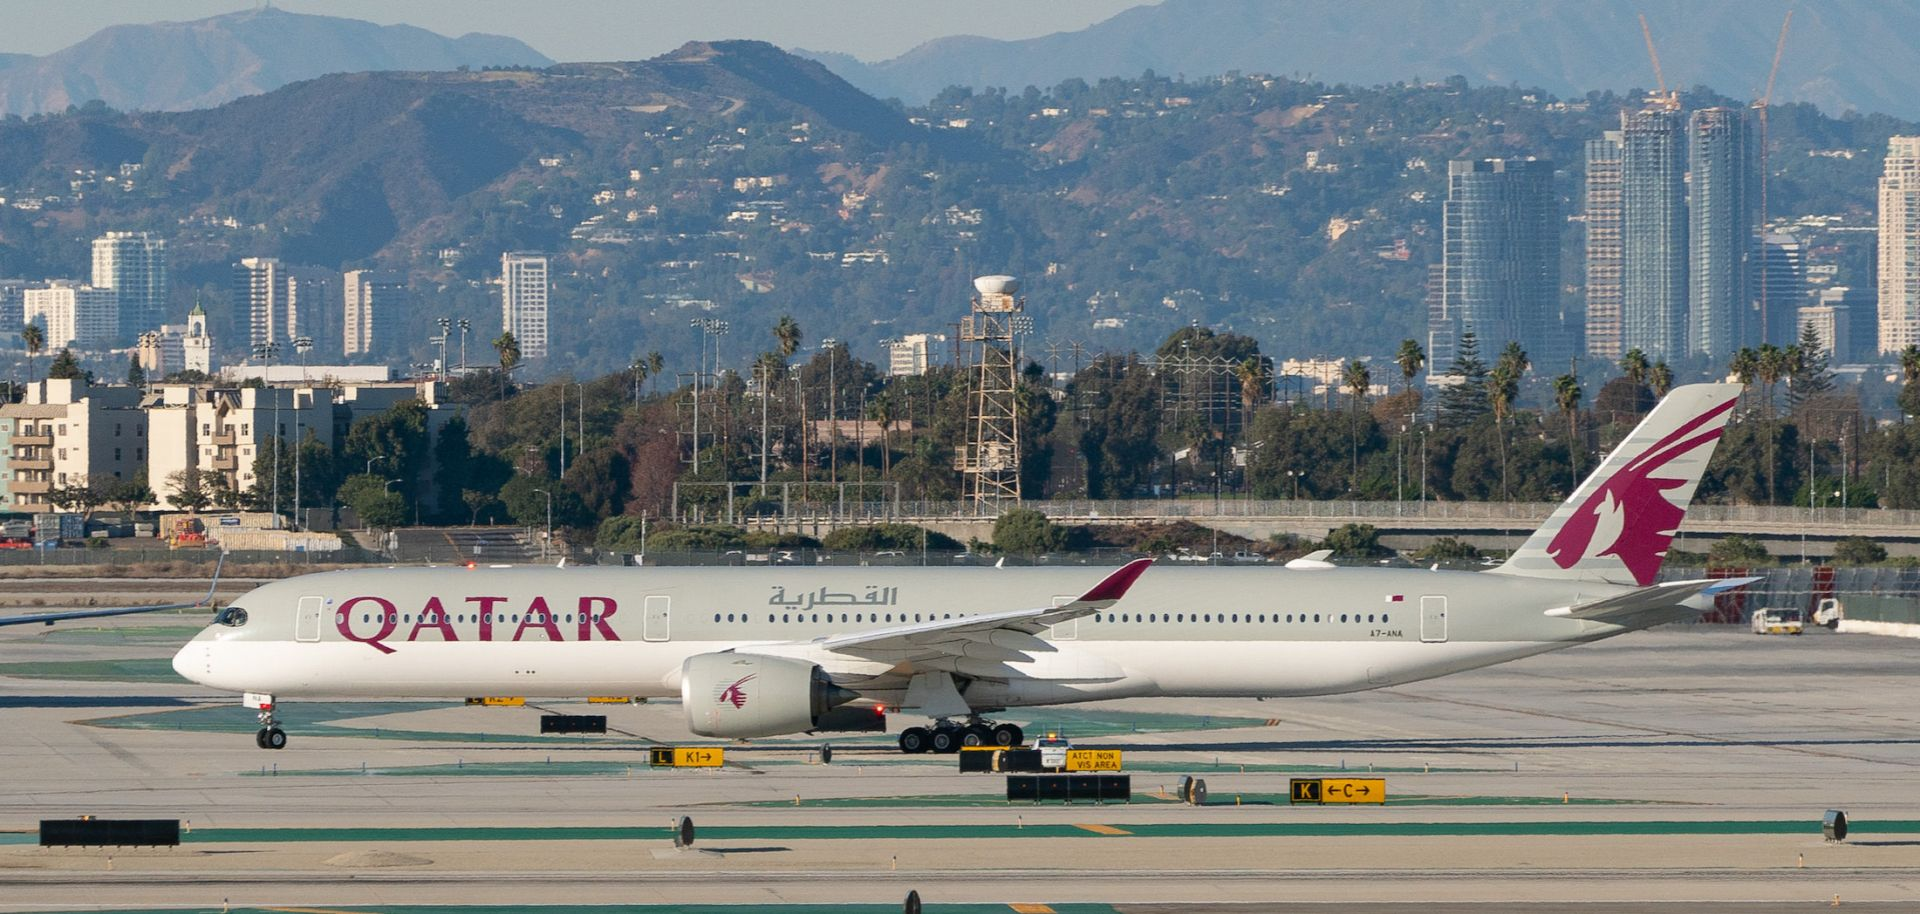 A Qatar Airways passenger jet prepares for take-off on the tarmac of the Los Angeles International Airport on Nov. 11, 2020, in Los Angeles, California.